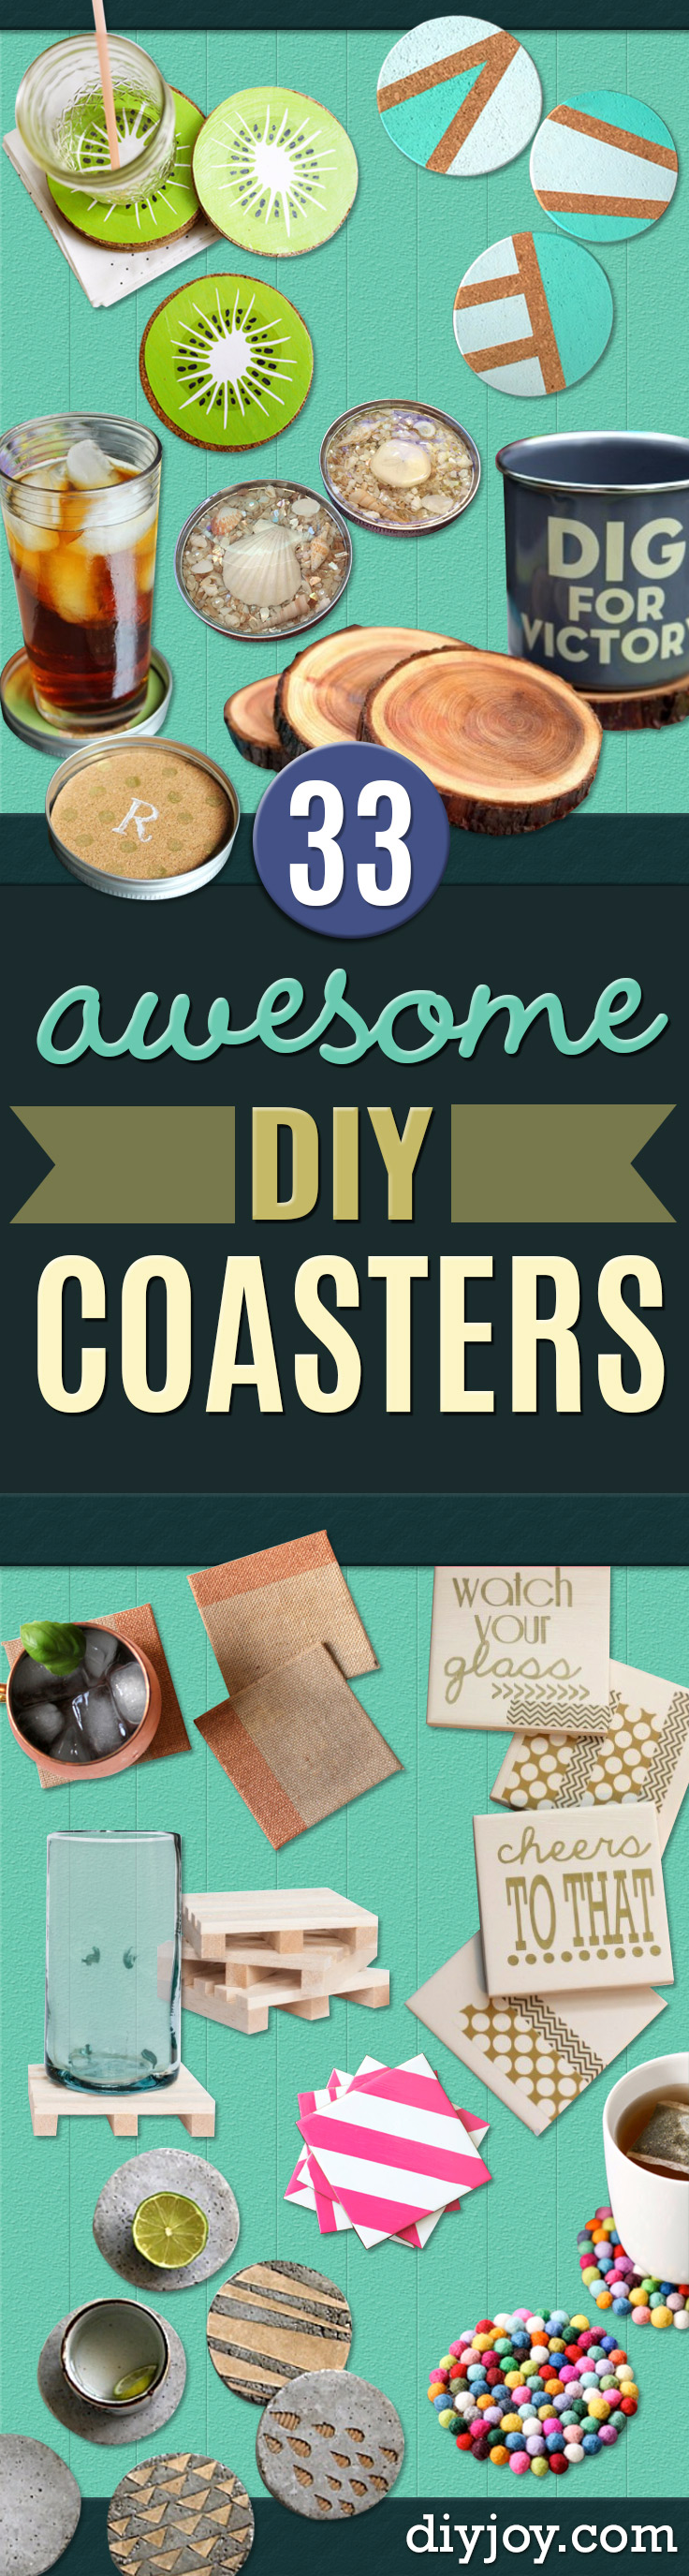 DIY Coasters - Best Quick DIY Gifts and Home Decor - Easy Step by Step Tutorials for DIY Coaster Projects - Mod Podge, Tile, Painted, Photo and Sewing Projects - Cool Christmas Presents for Him and Her - DIY Projects and Crafts by DIY Joy http://diyjoy.com/diy-coasters